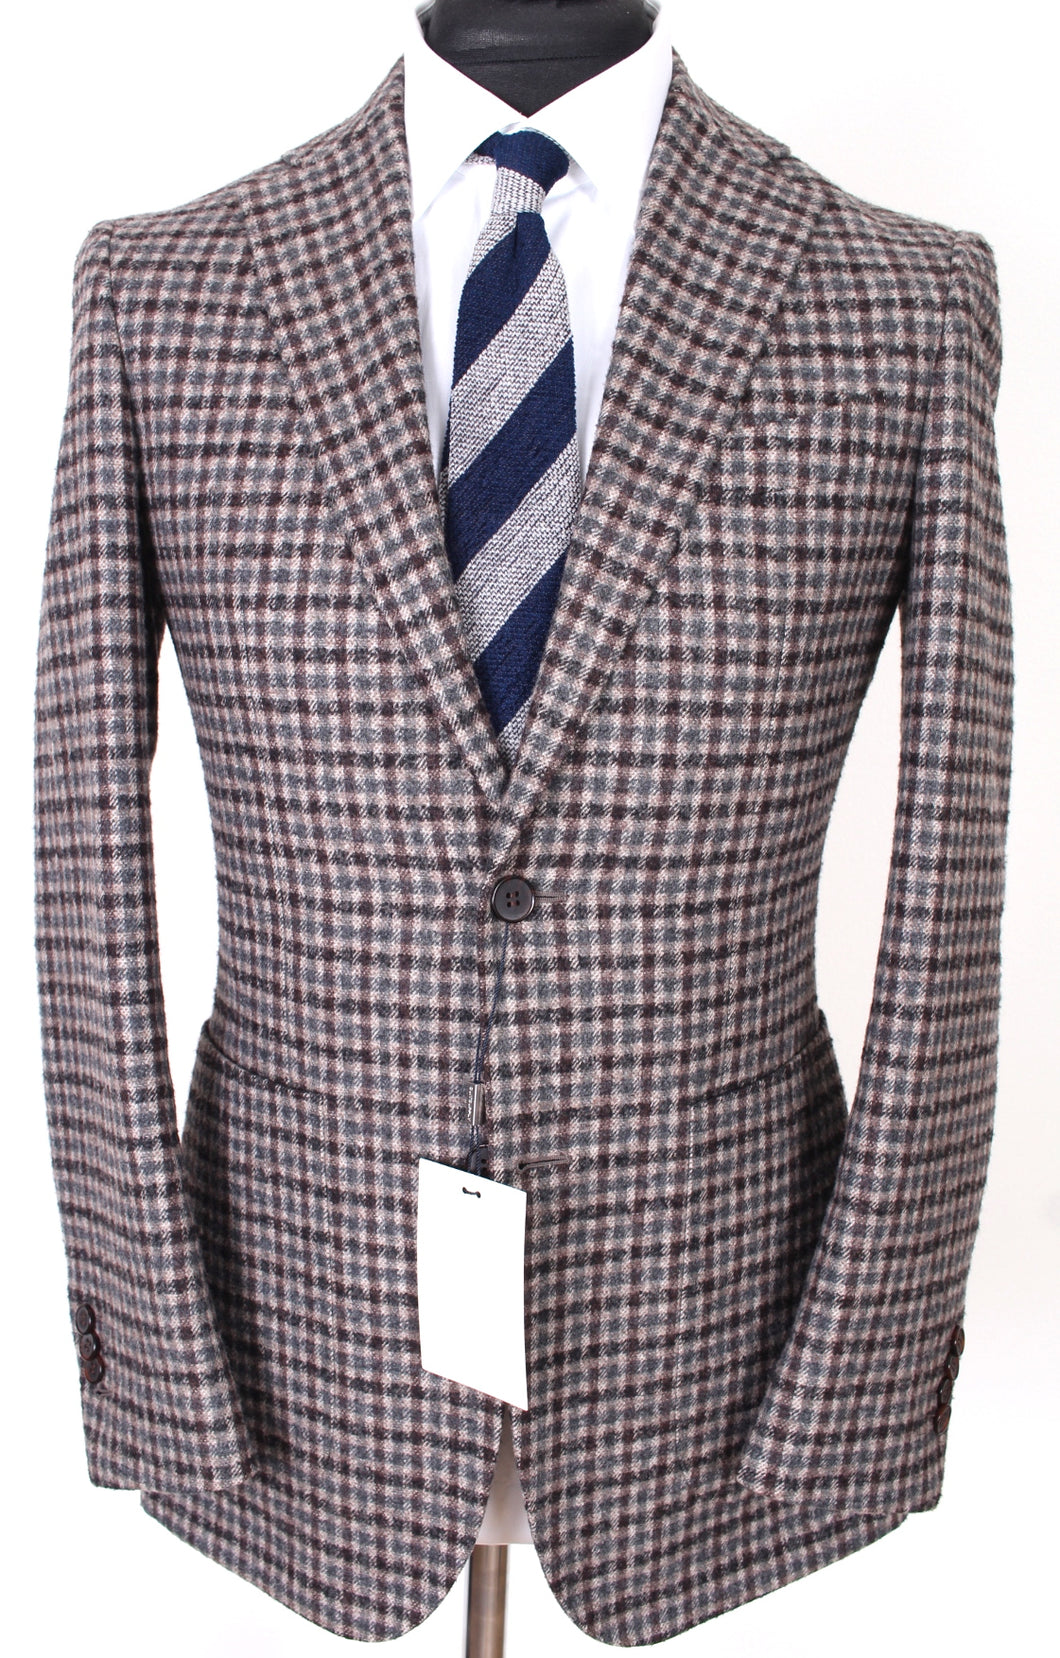 New Suitsupply Mid Brown Check 90% Wool Blazer - Size 36R